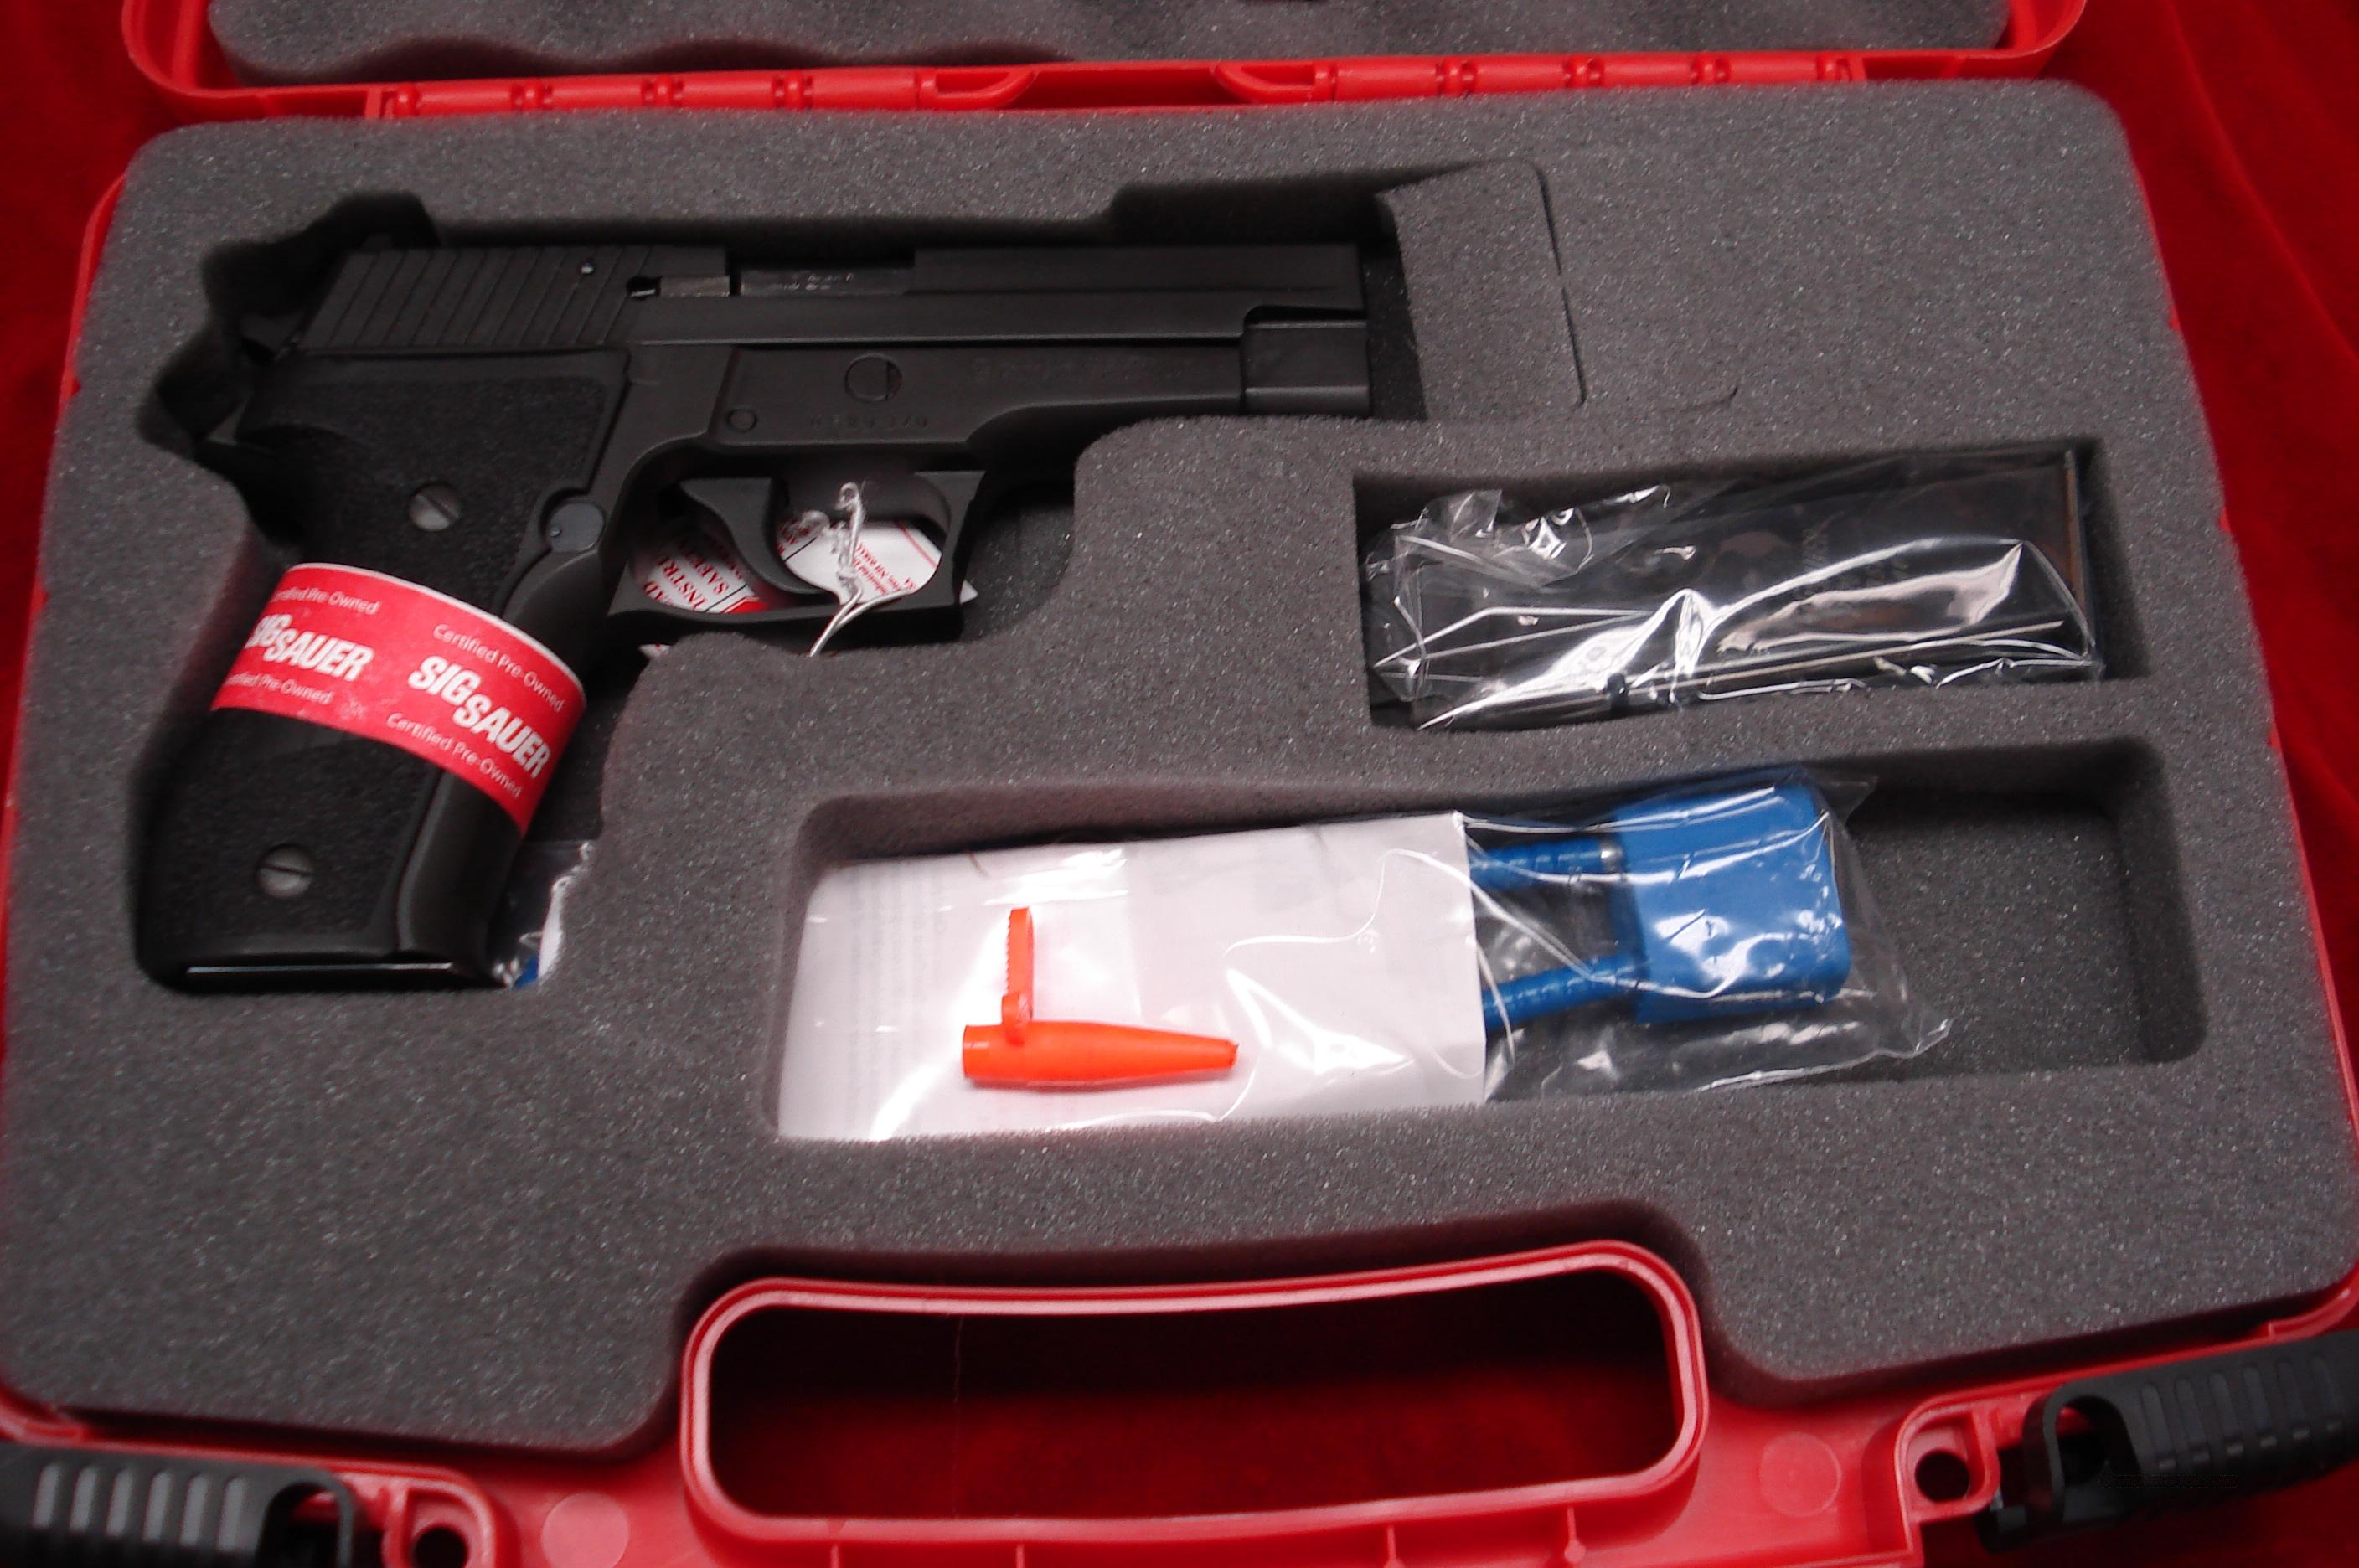 SIG SAUER P226 .40 CAL. CERTIFIED PREOWNED   Guns > Pistols > Sig - Sauer/Sigarms Pistols > P226